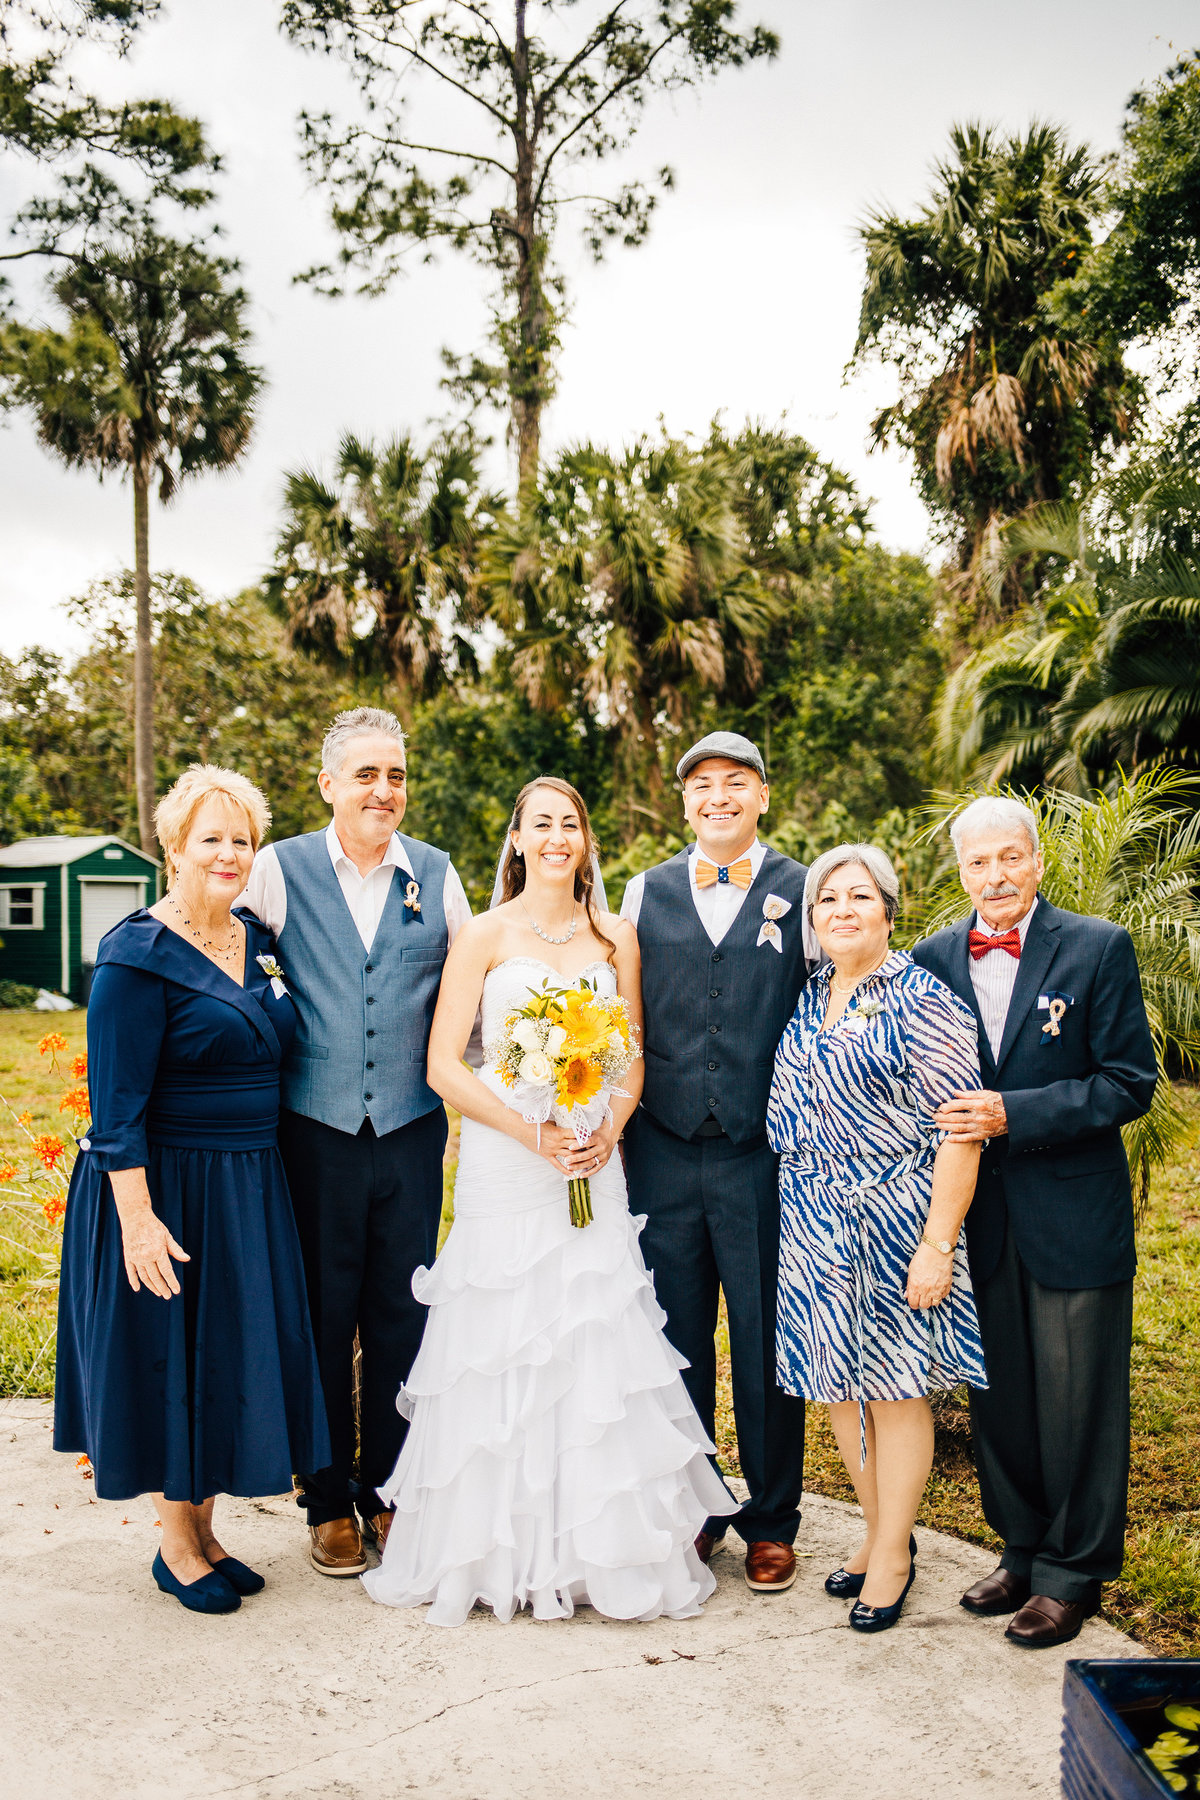 Kimberly_Hoyle_Photography_Marrero_Millikens_Reef_Wedding-29